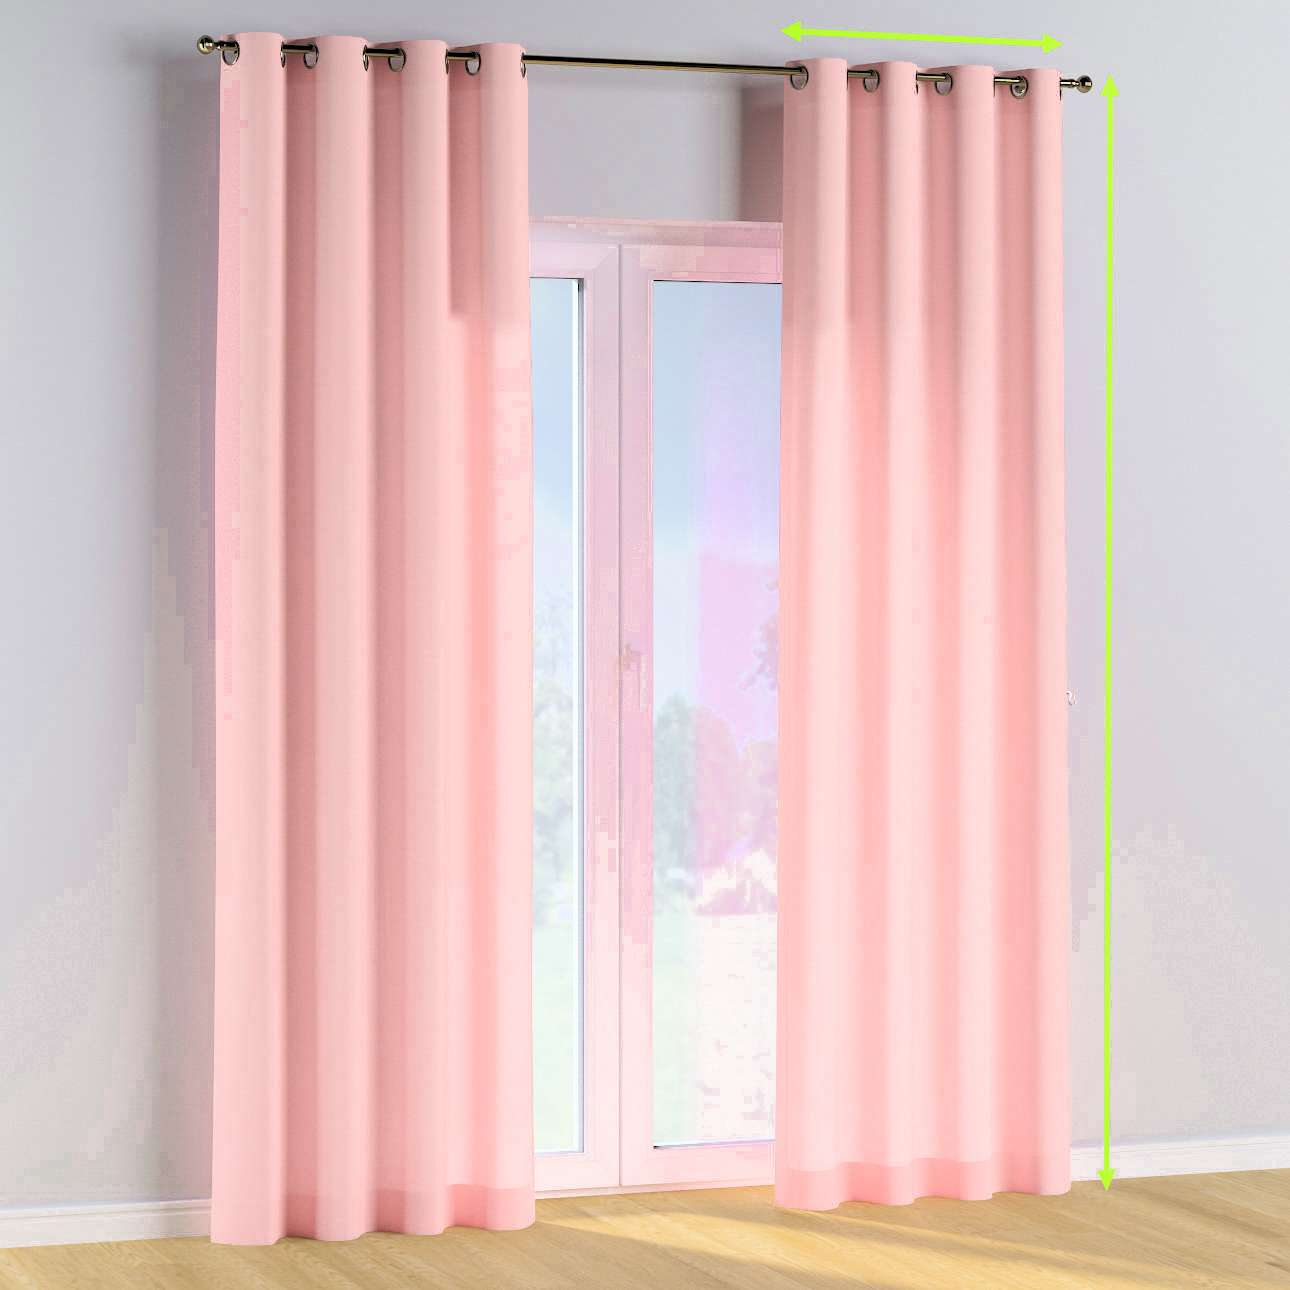 Eyelet curtains in collection Happiness, fabric: 133-39